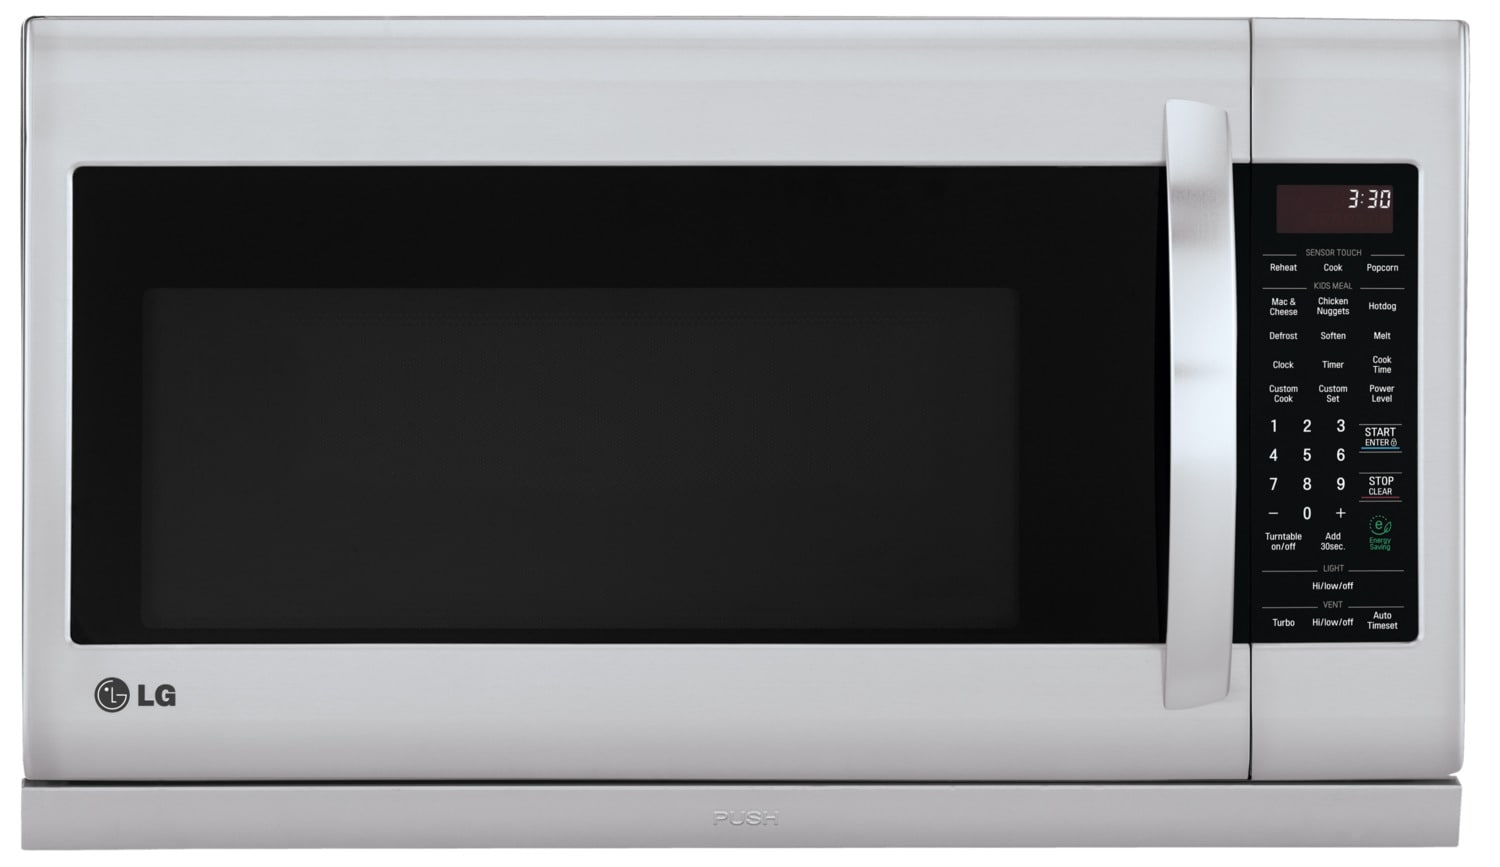 LG Appliances Stainless Steel Over-the-Range Microwave (2.0 Cu. Ft.) - LMV2055ST